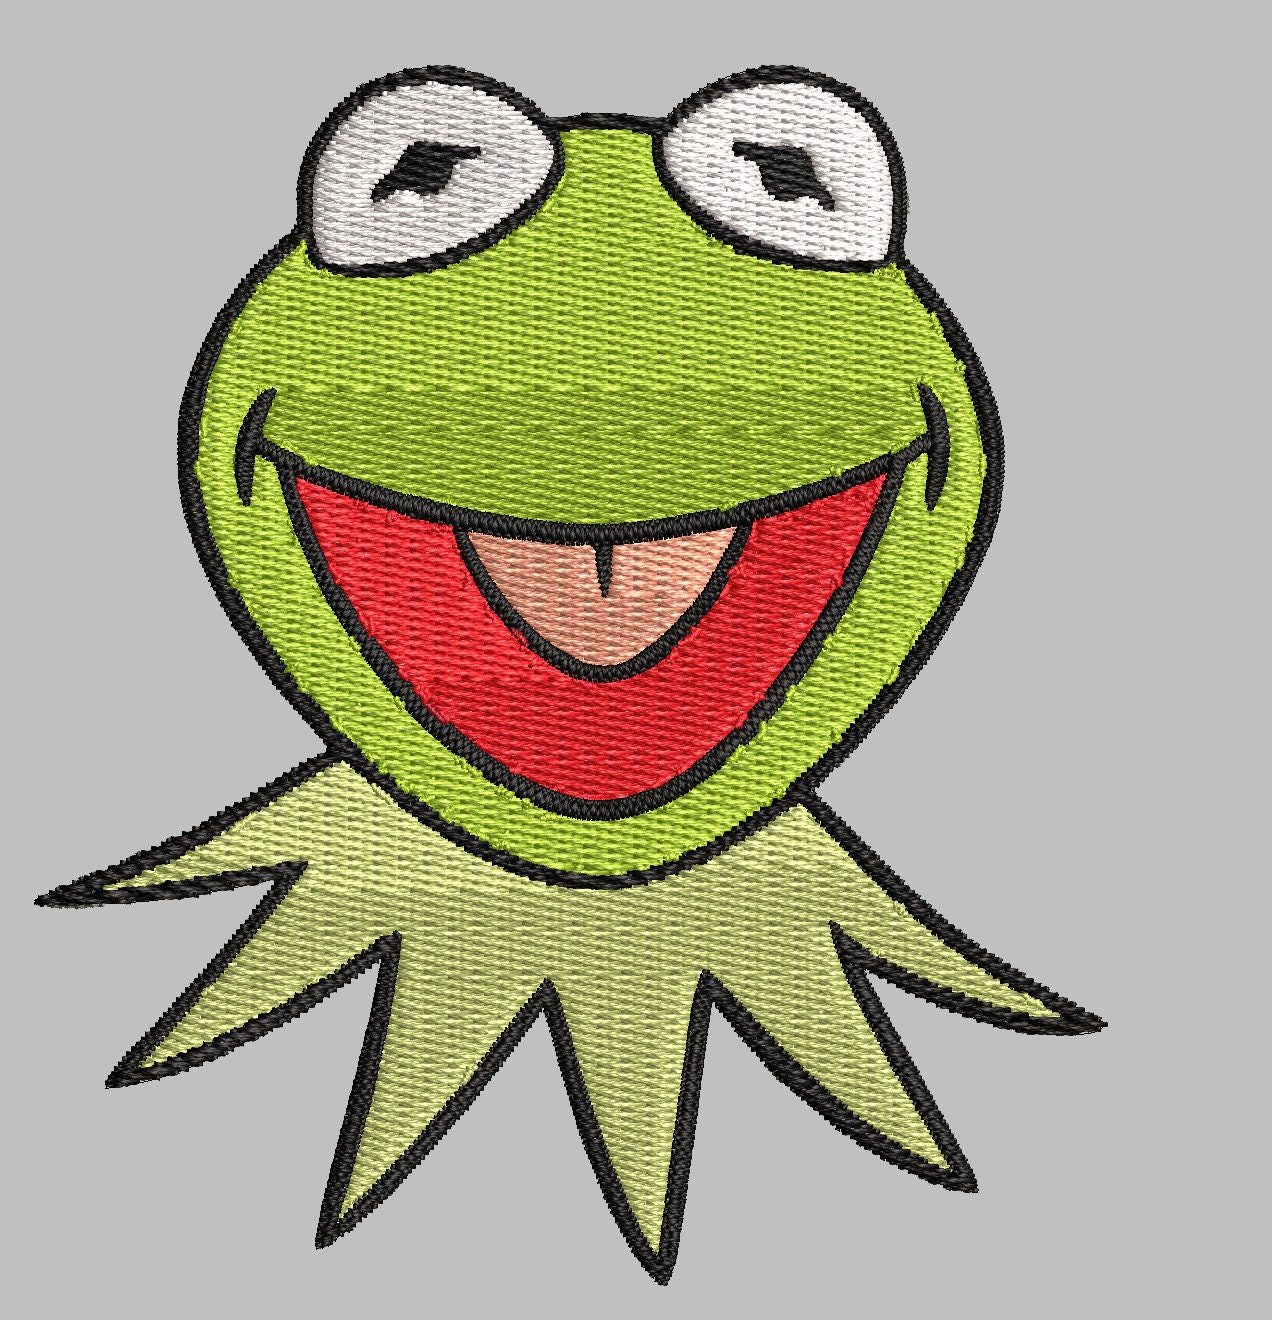 Kermit Christmas Embroidery | www.topsimages.com